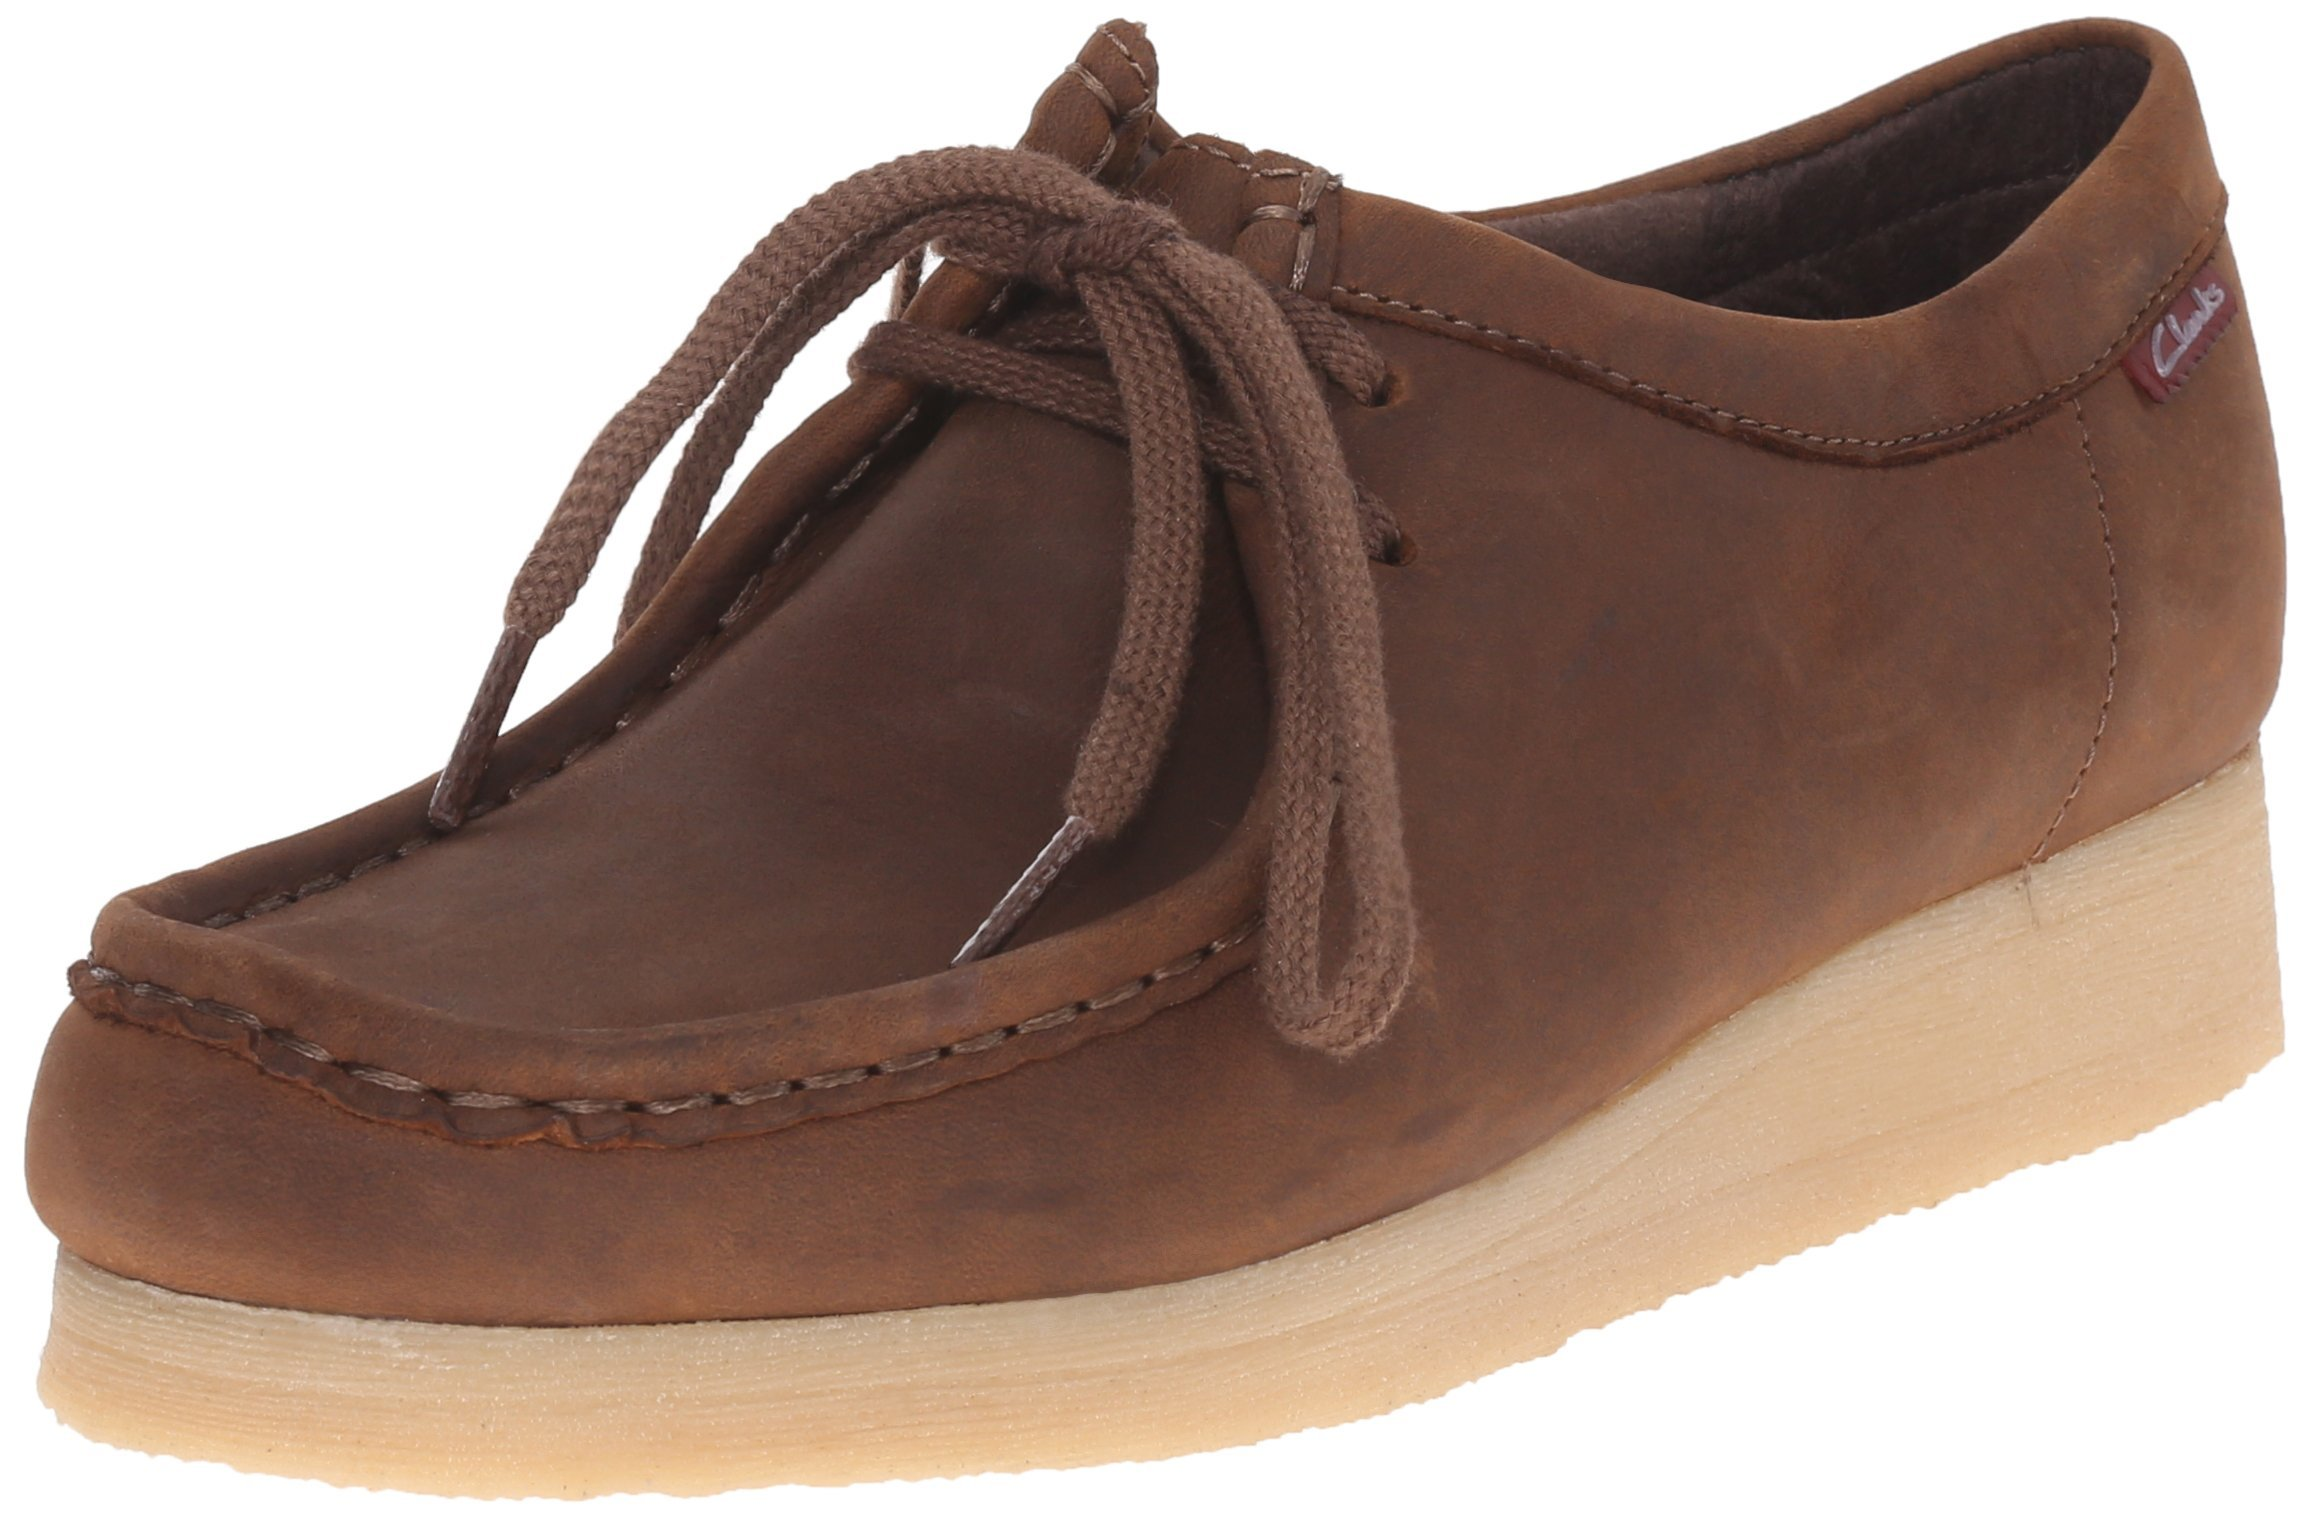 CLARKS Women's Padmora Oxford, Brown Smooth, 7.5 M US